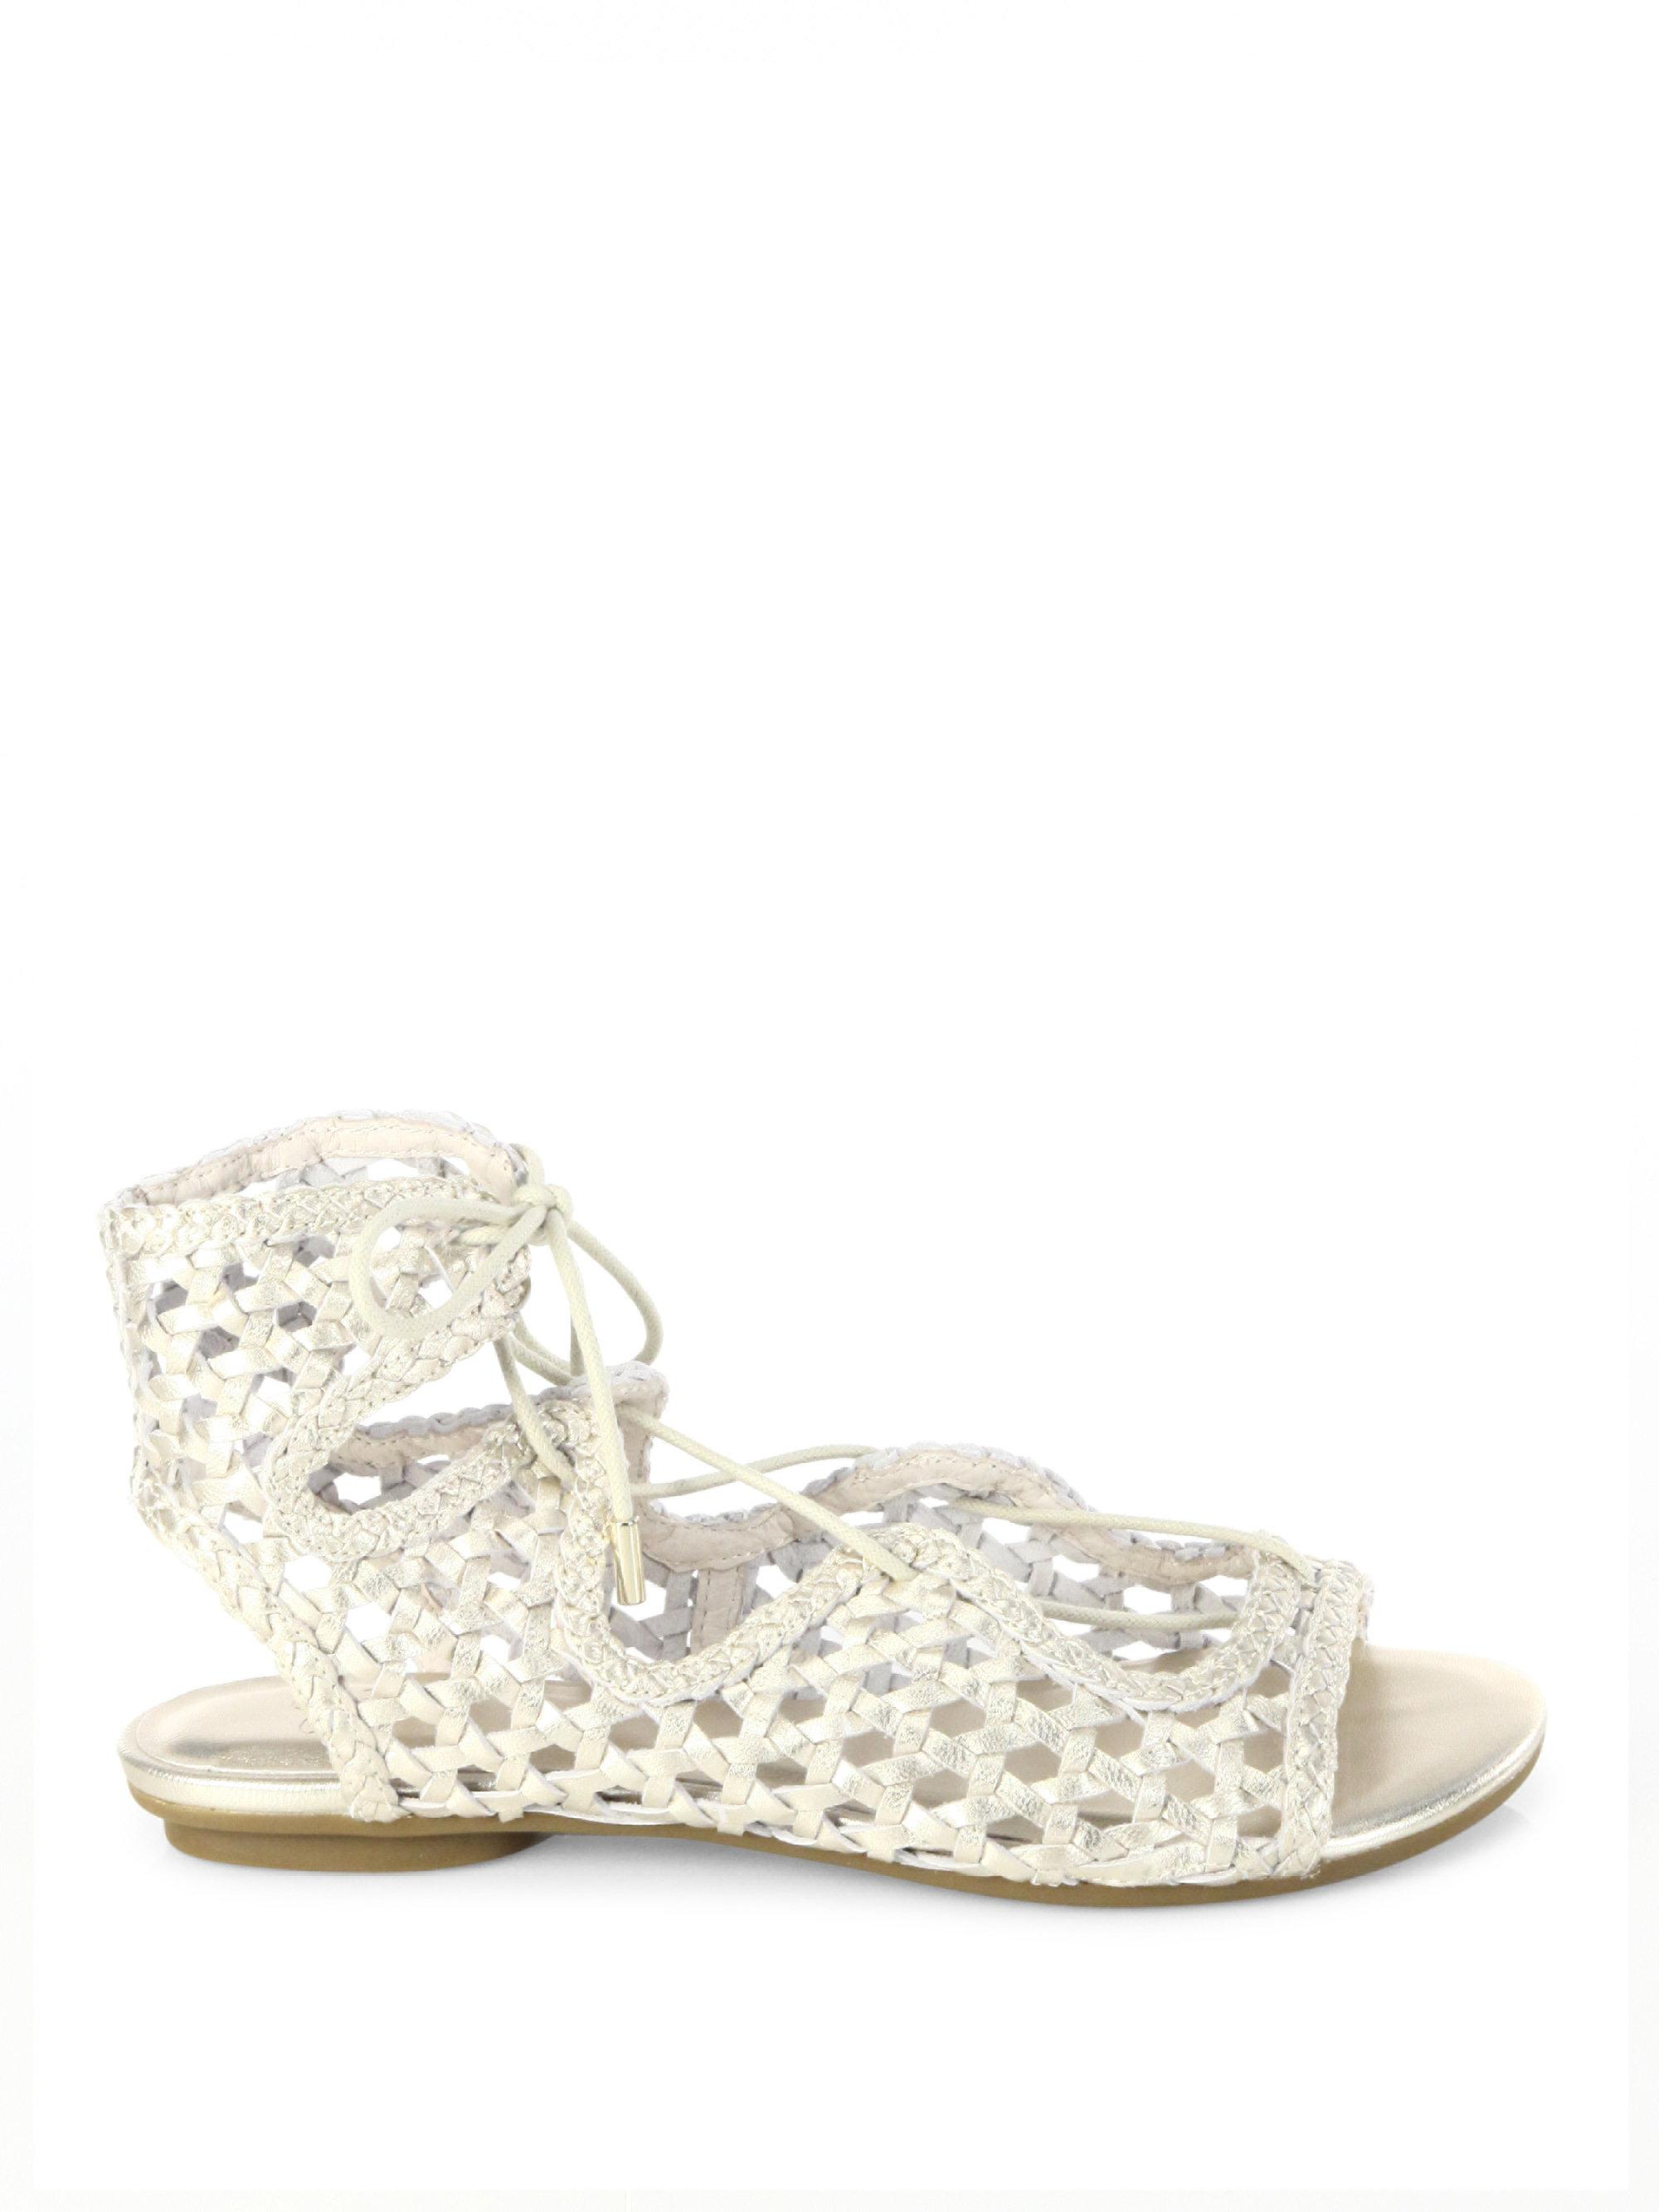 Joie - Fannie Woven Metallic Leather Lace-up Sandals - Lyst. View fullscreen